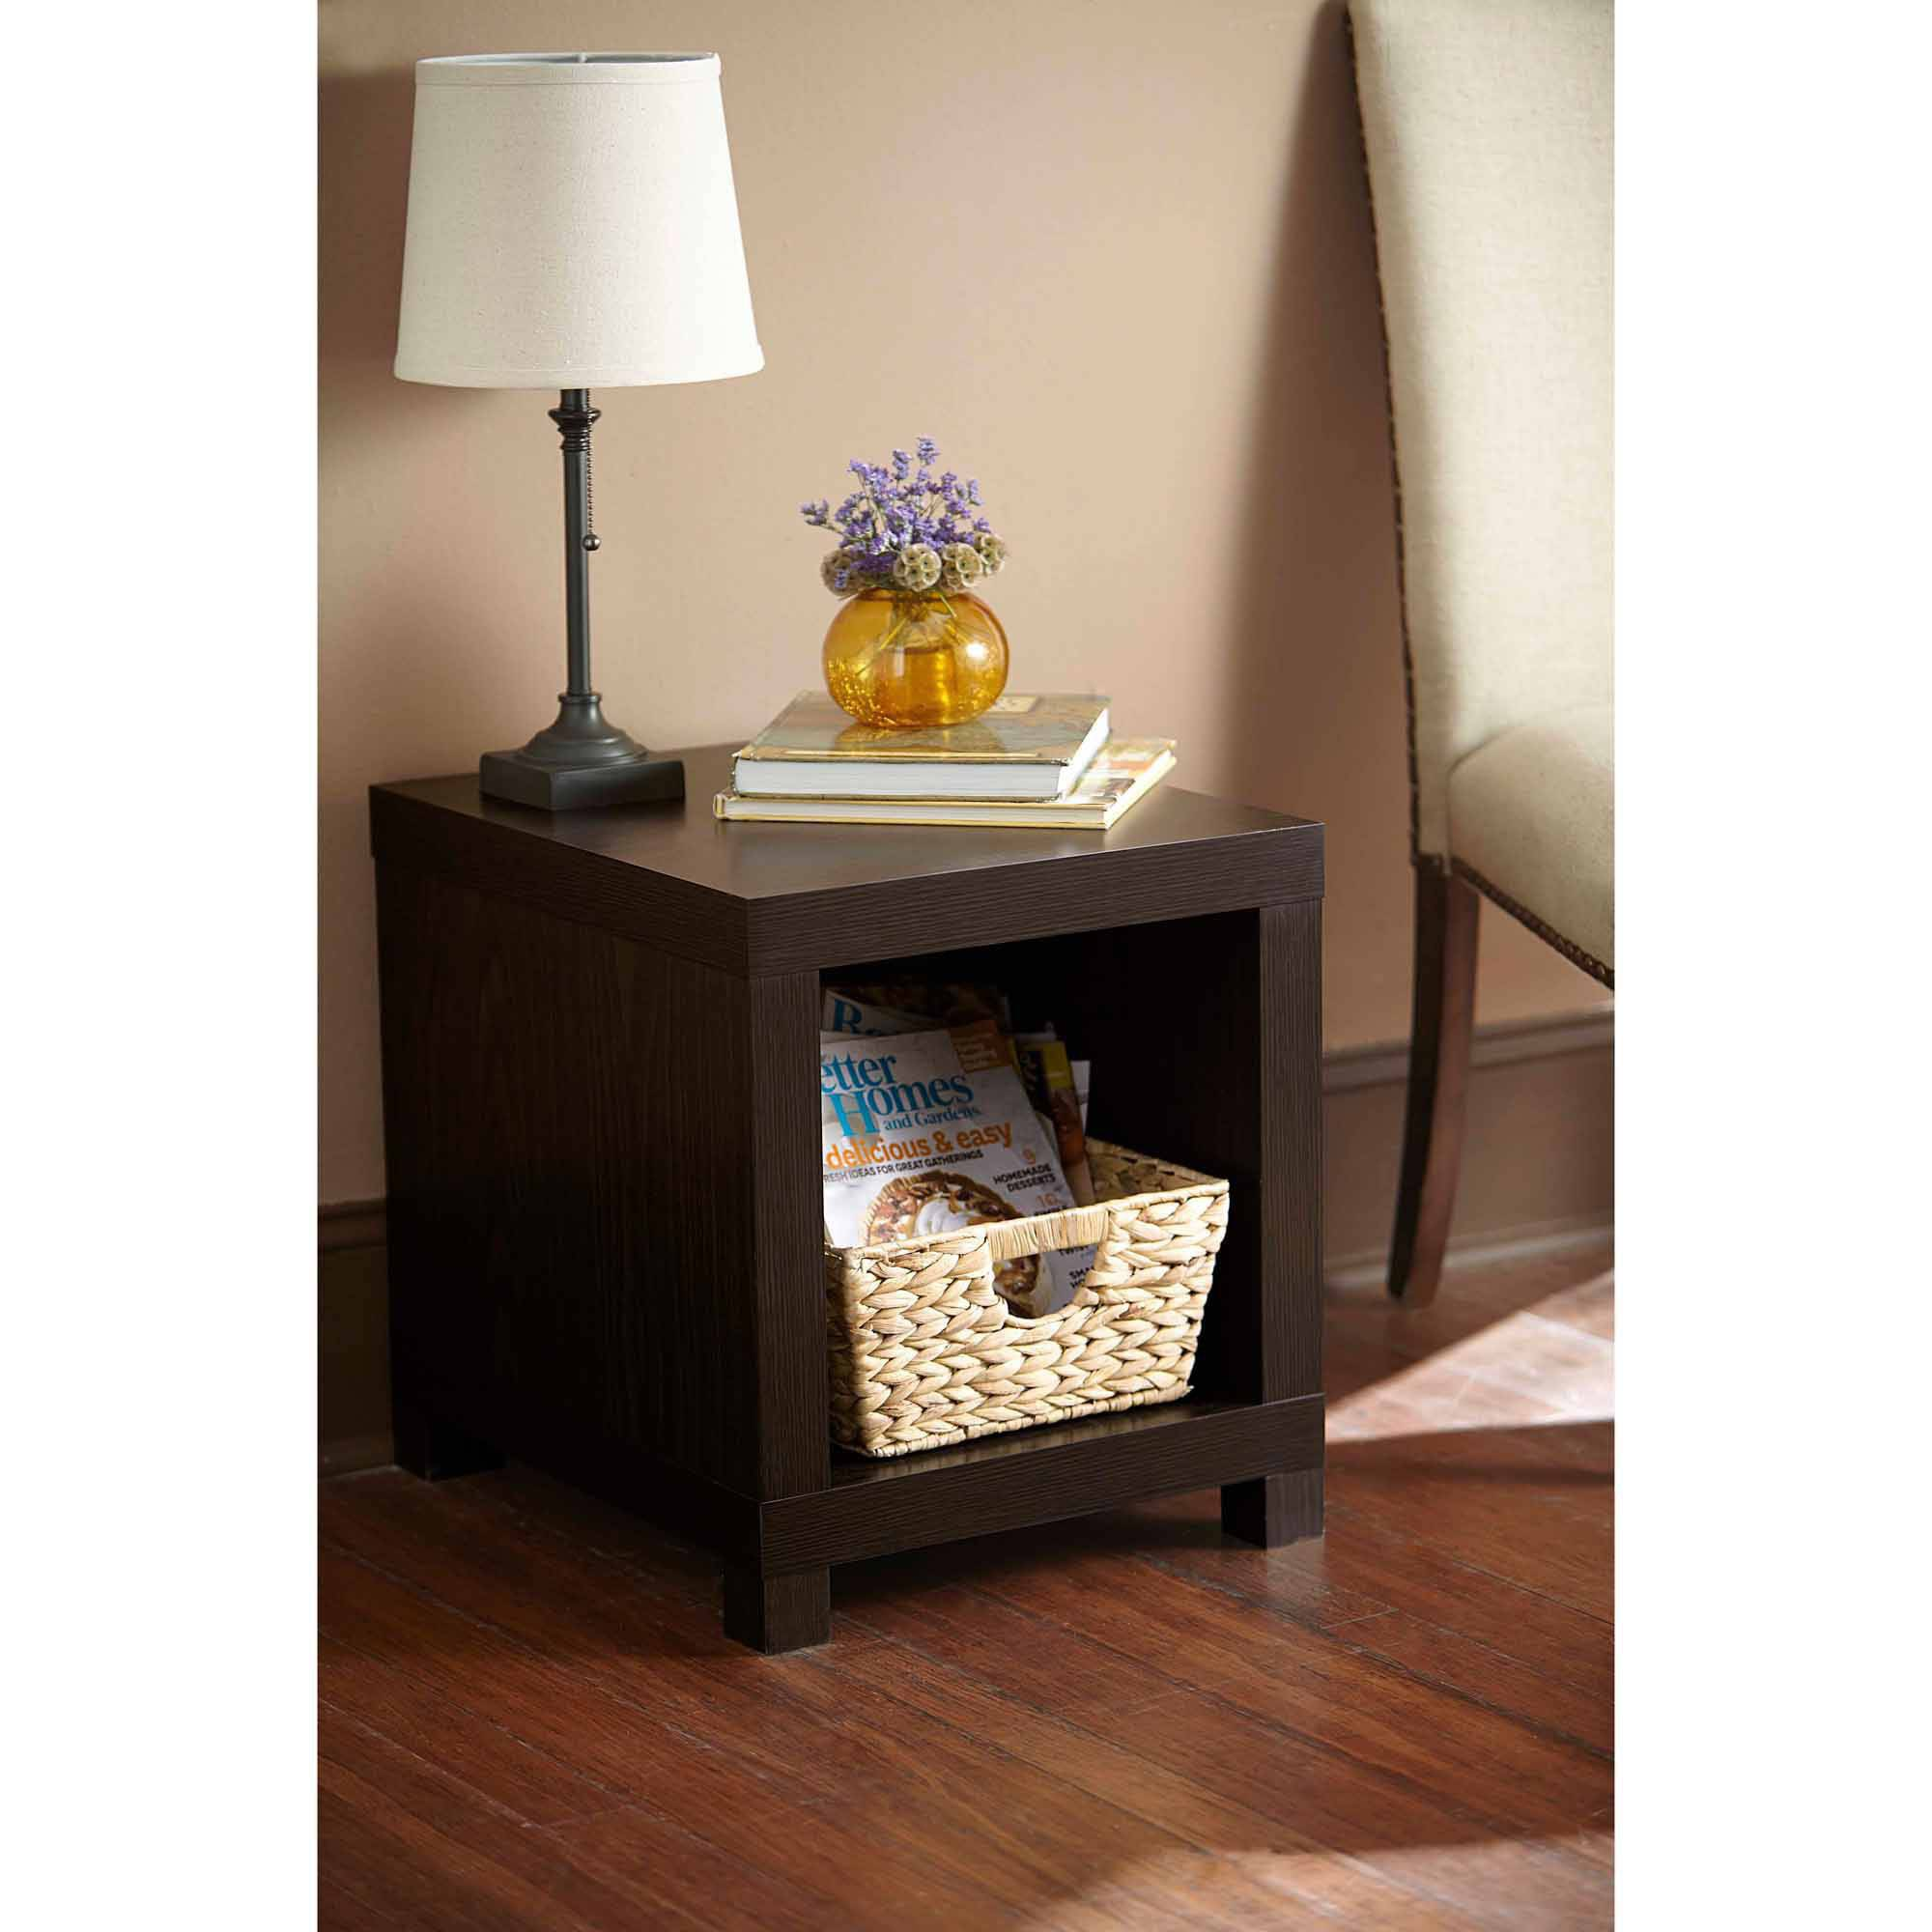 telephone stand espresso tall accent table modern nic corner black counter height dining set west elm console rustic trunk coffee penny furniture hairpin legs whole home accents